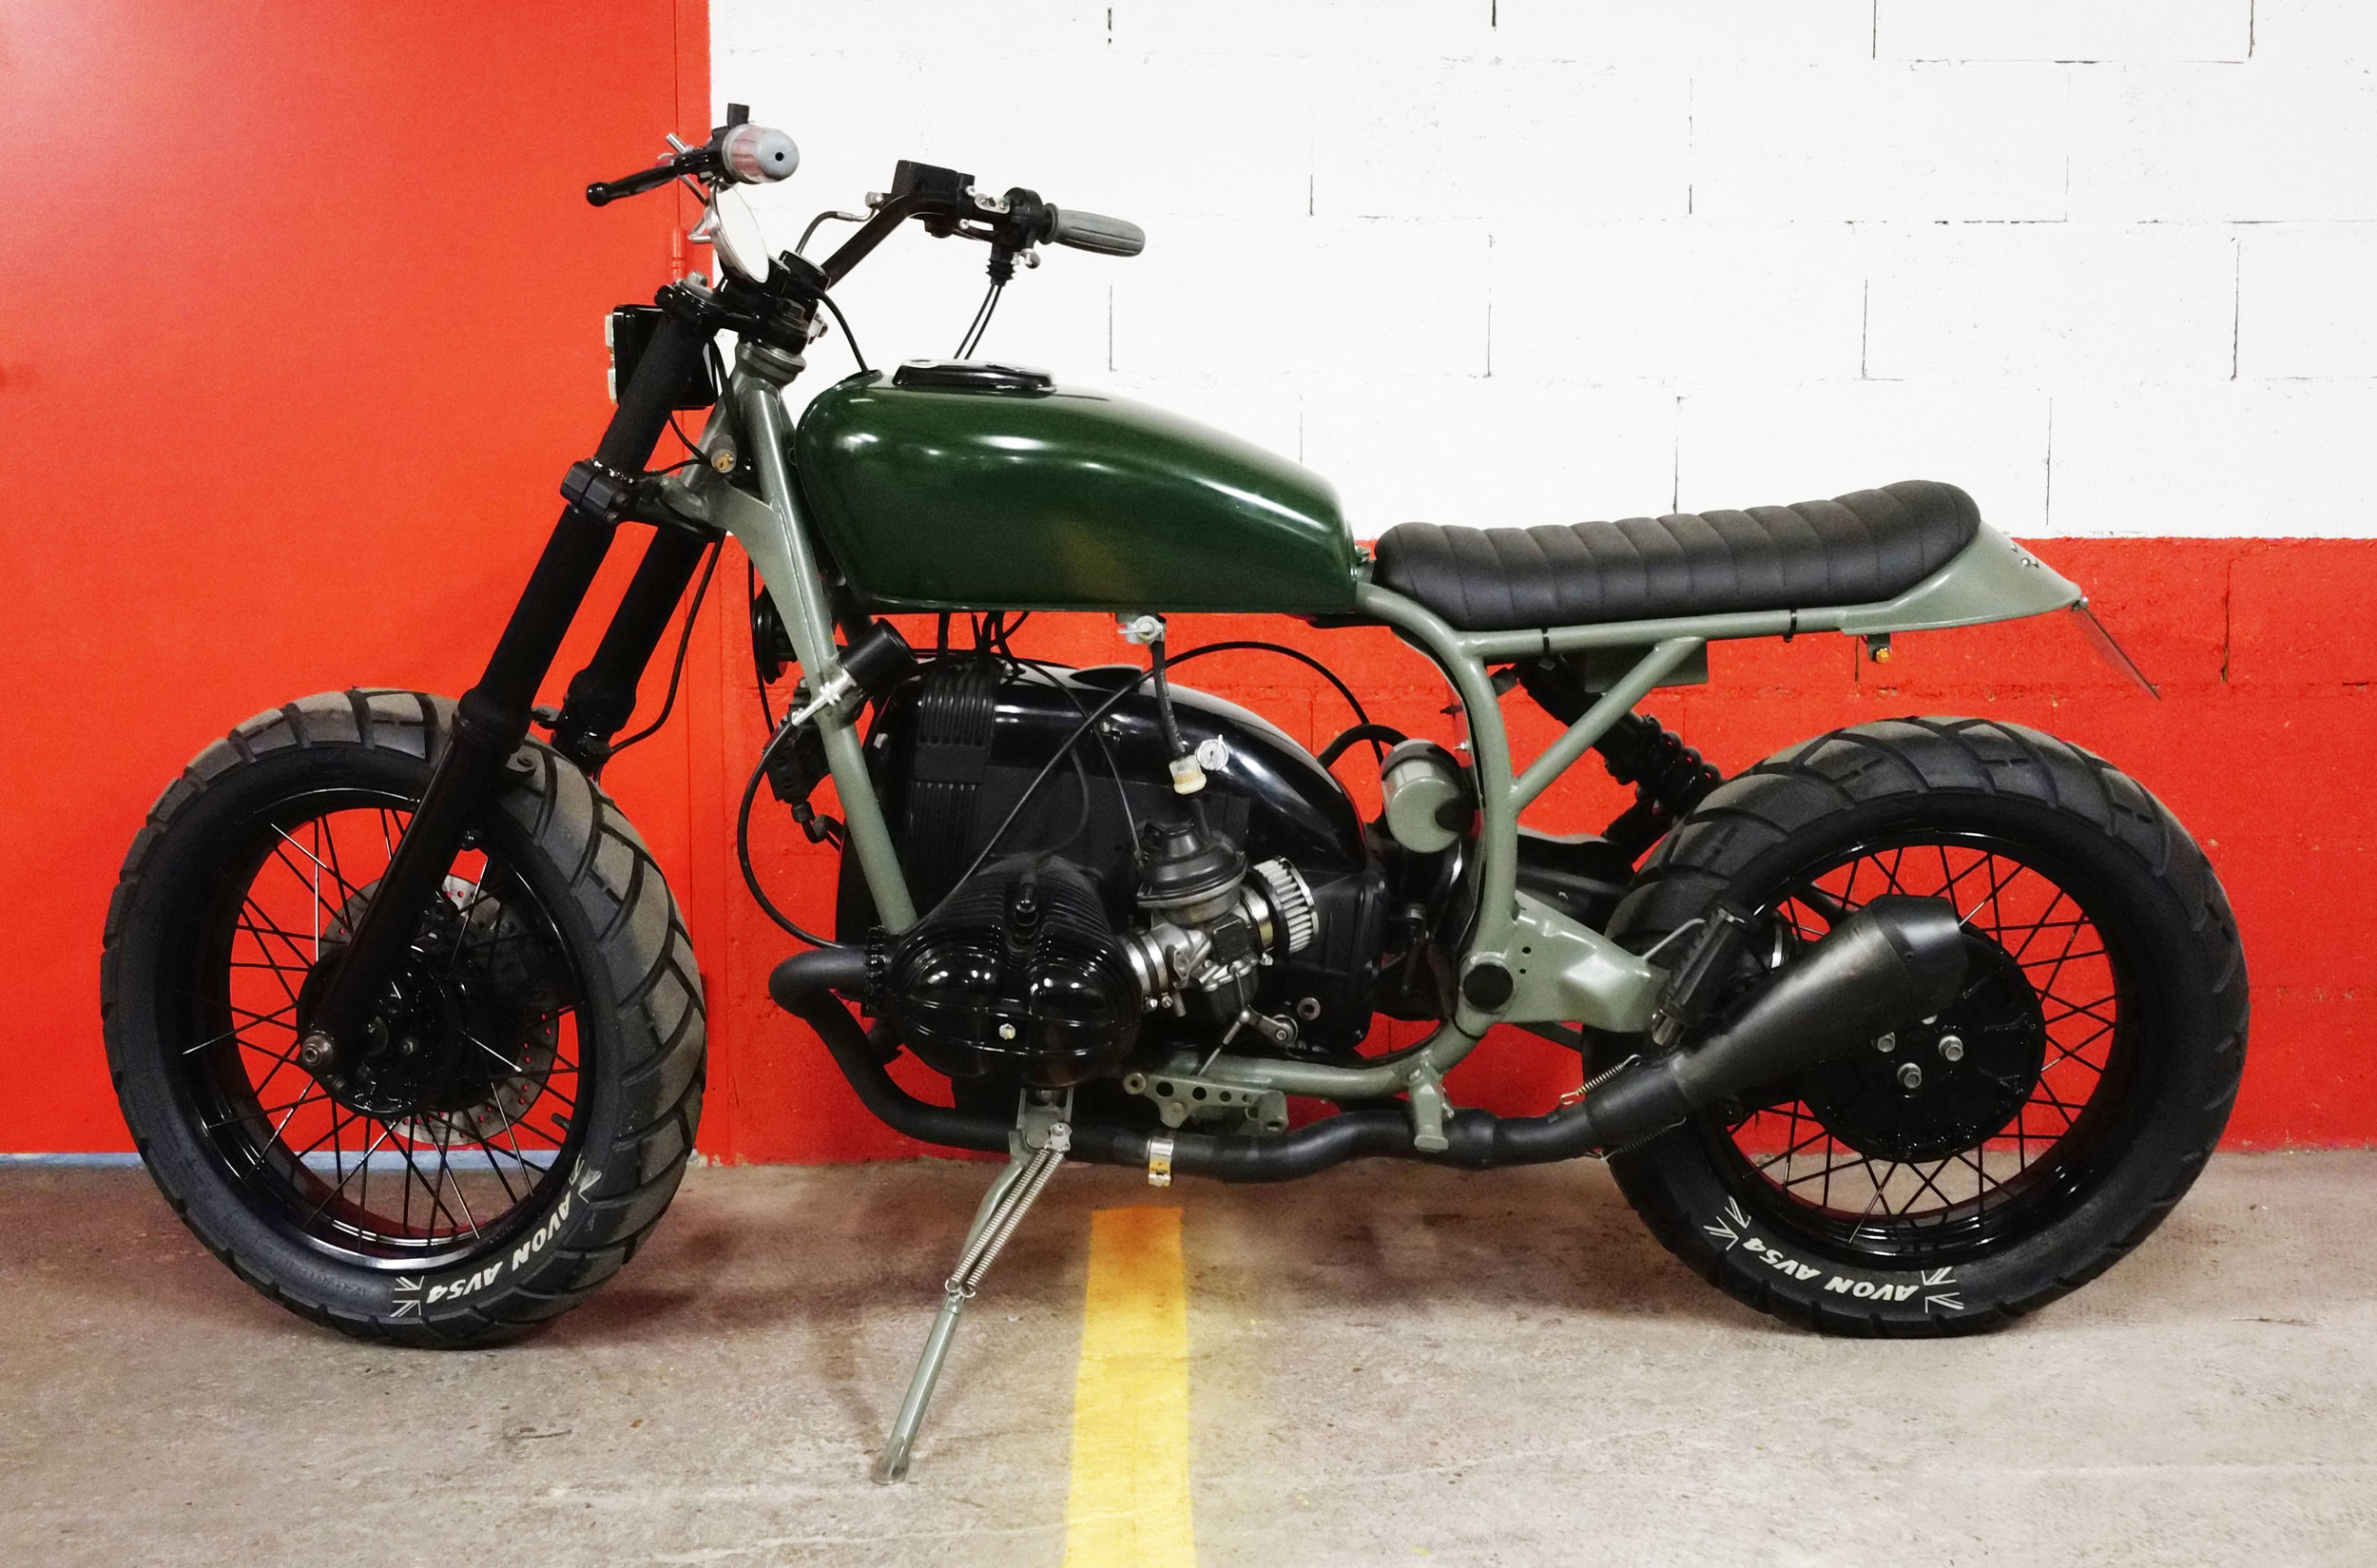 - Mat kaki green powder coating of the frame, footpegs and side stand;  - shiny black powder coating of all engine covers, fork legs, triple trees, handlebar and wheels;  -   Avon AV45   tyres for both rear and front wheels.